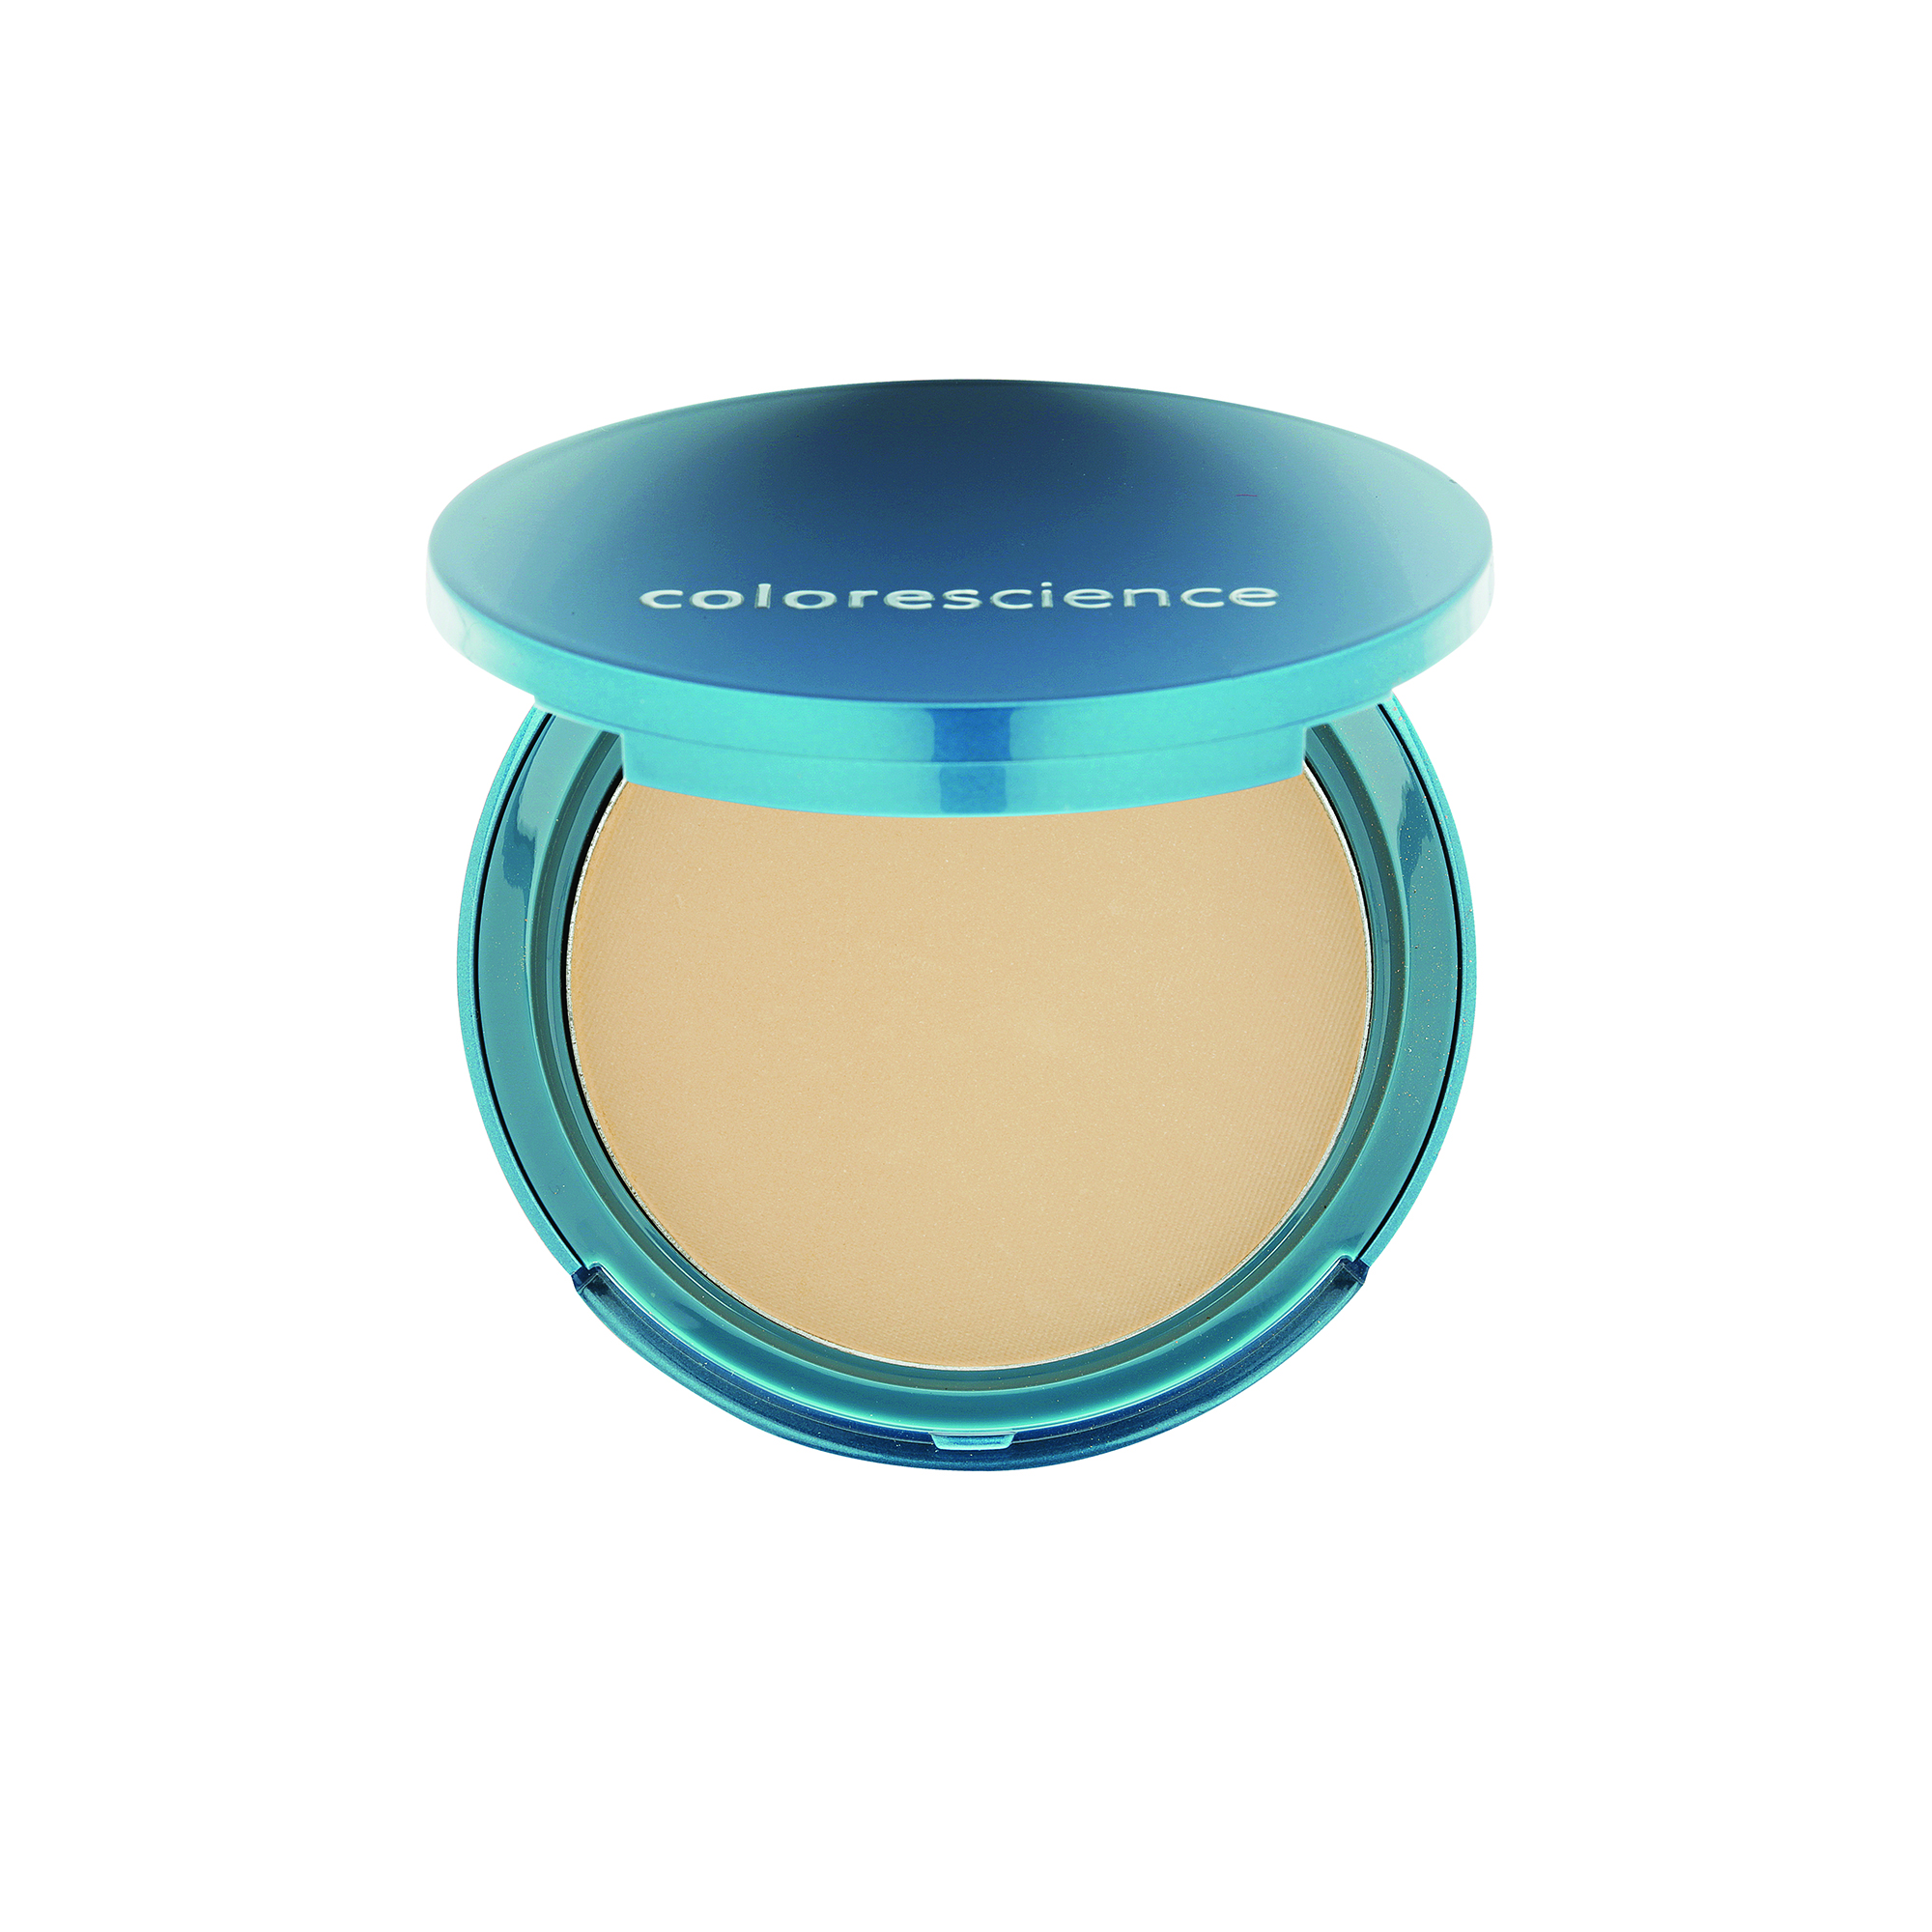 Colorescience Pressed Mineral Foundation Light Ivory